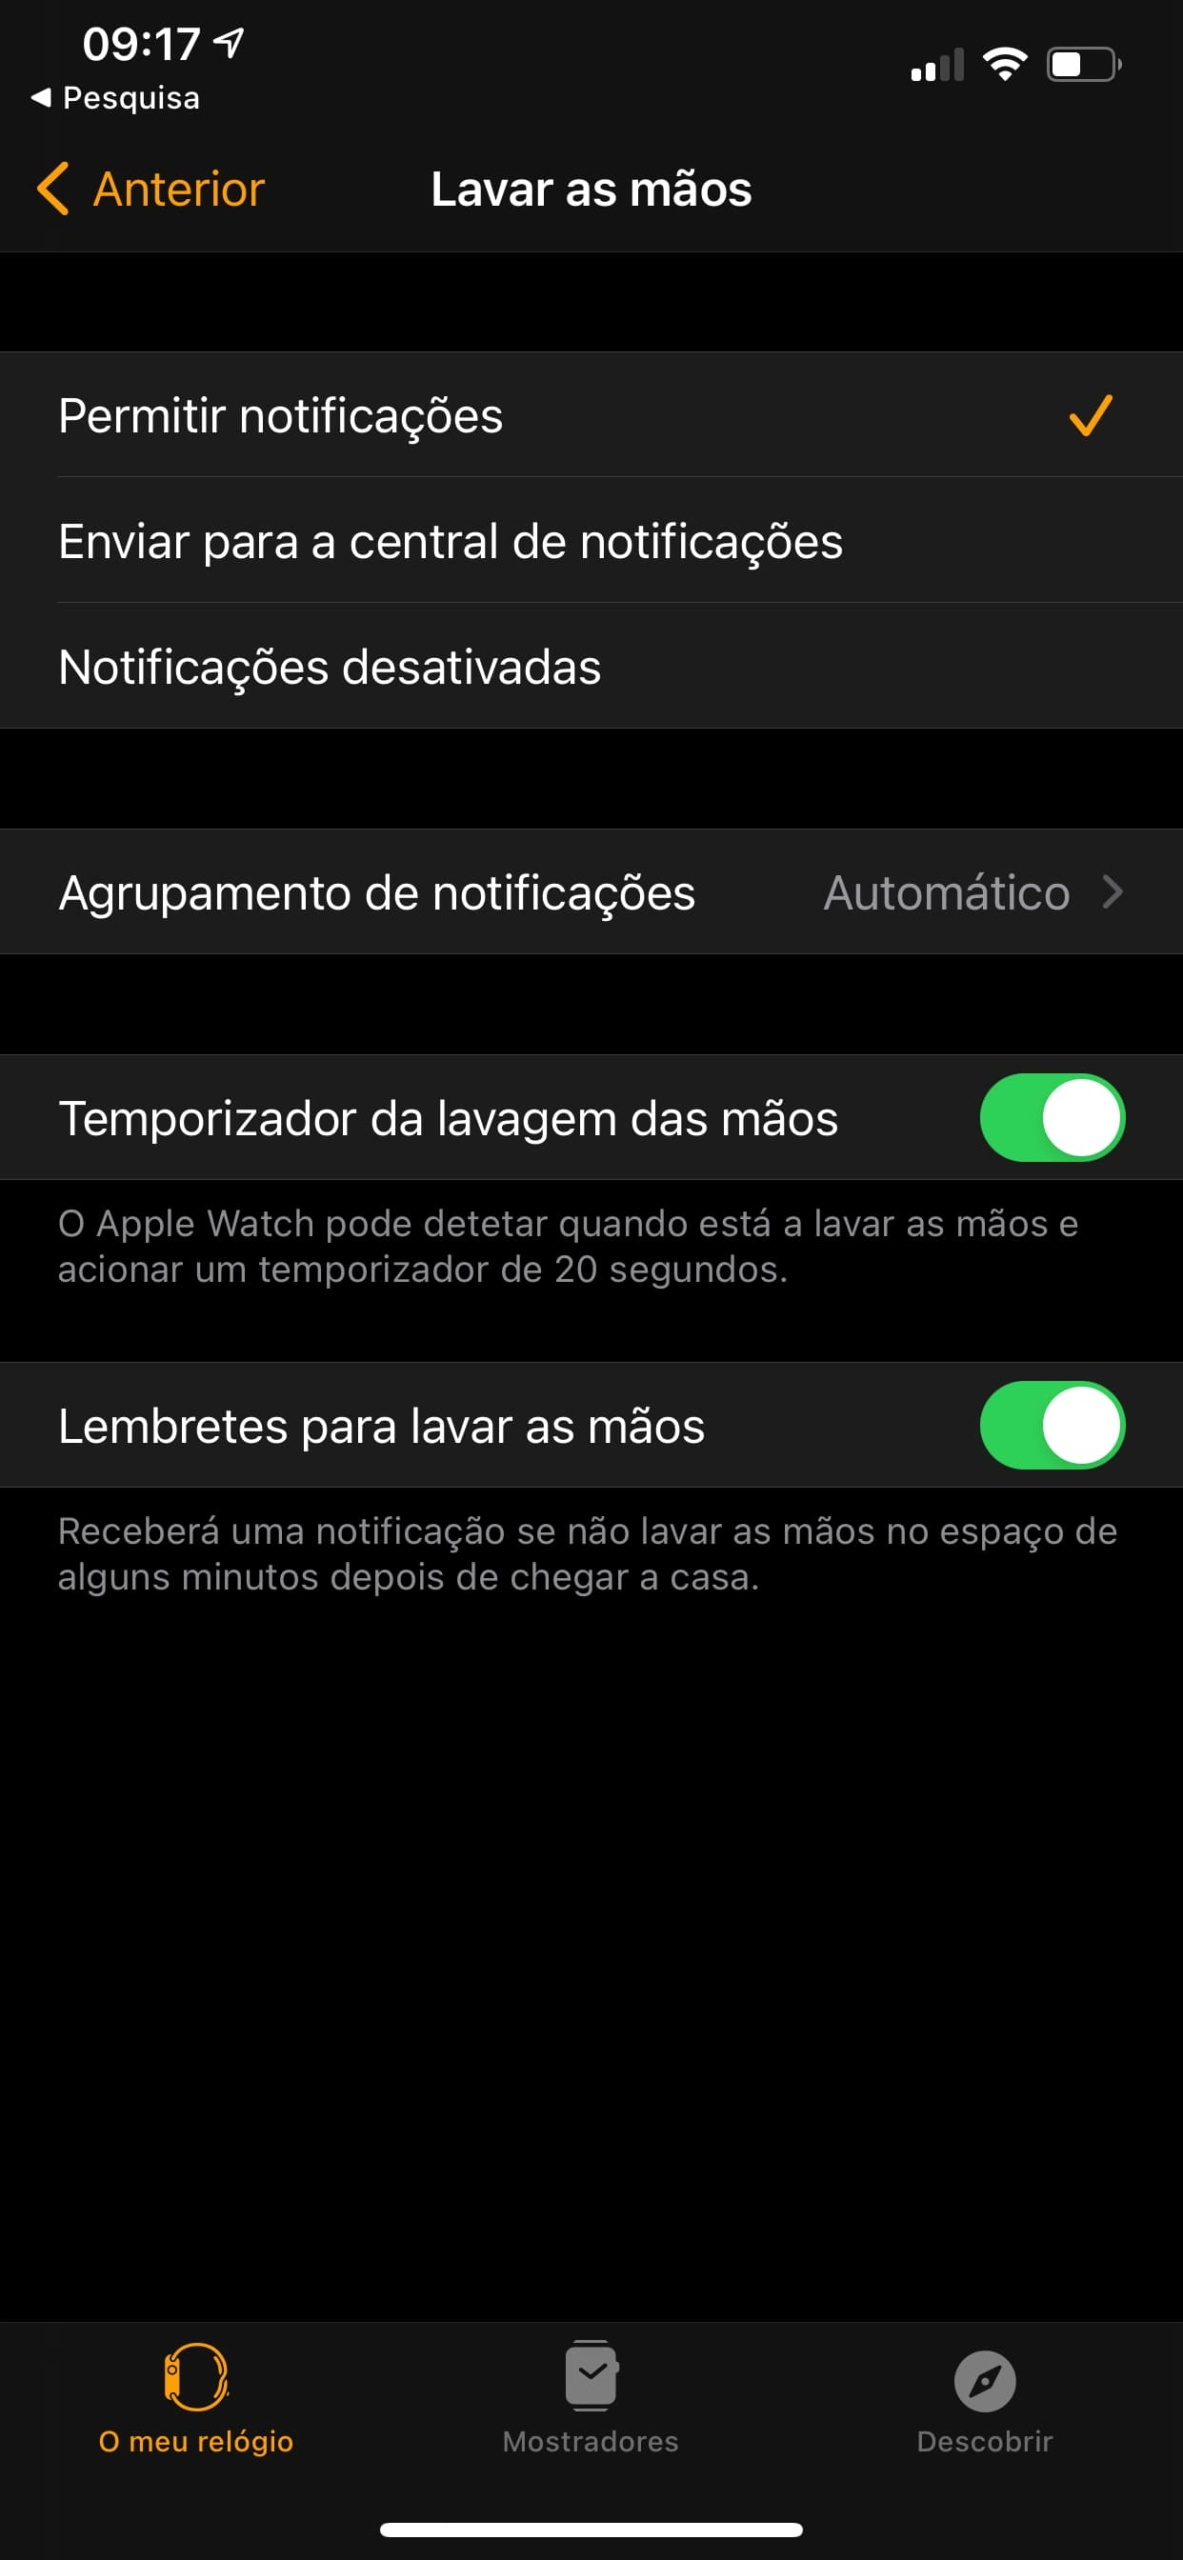 iphone 04 scaled - O seu Apple Watch agora lembra-o de lavar as mãos